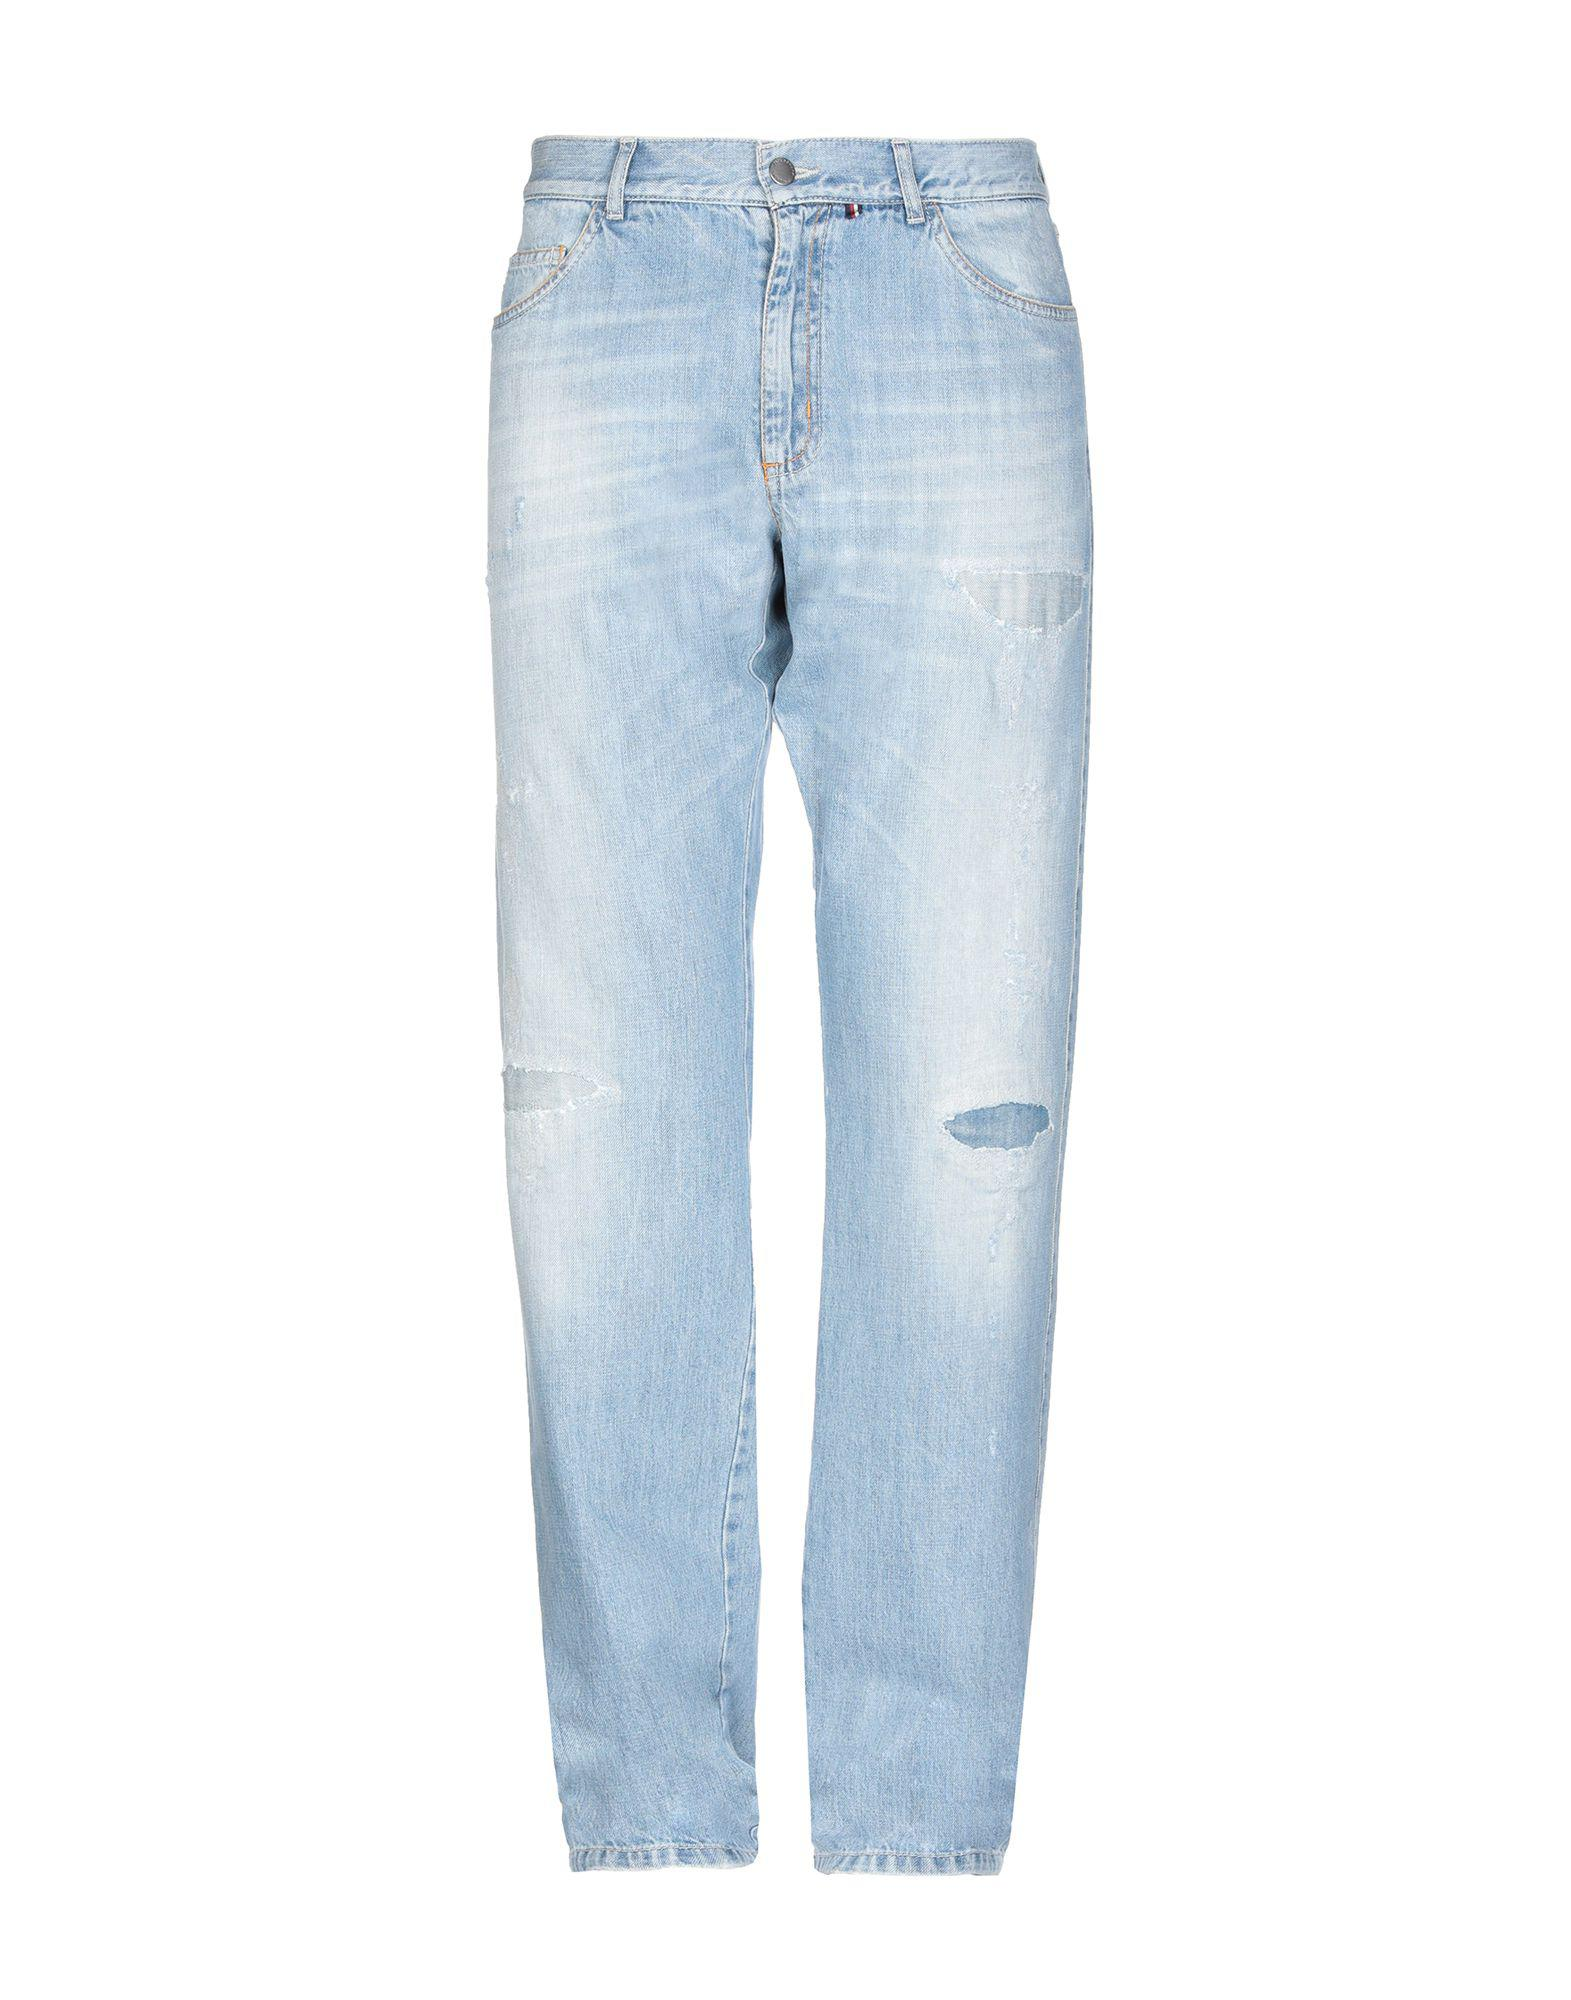 48f1b60053a Paul & Shark Denim Pants in Blue for Men - Lyst